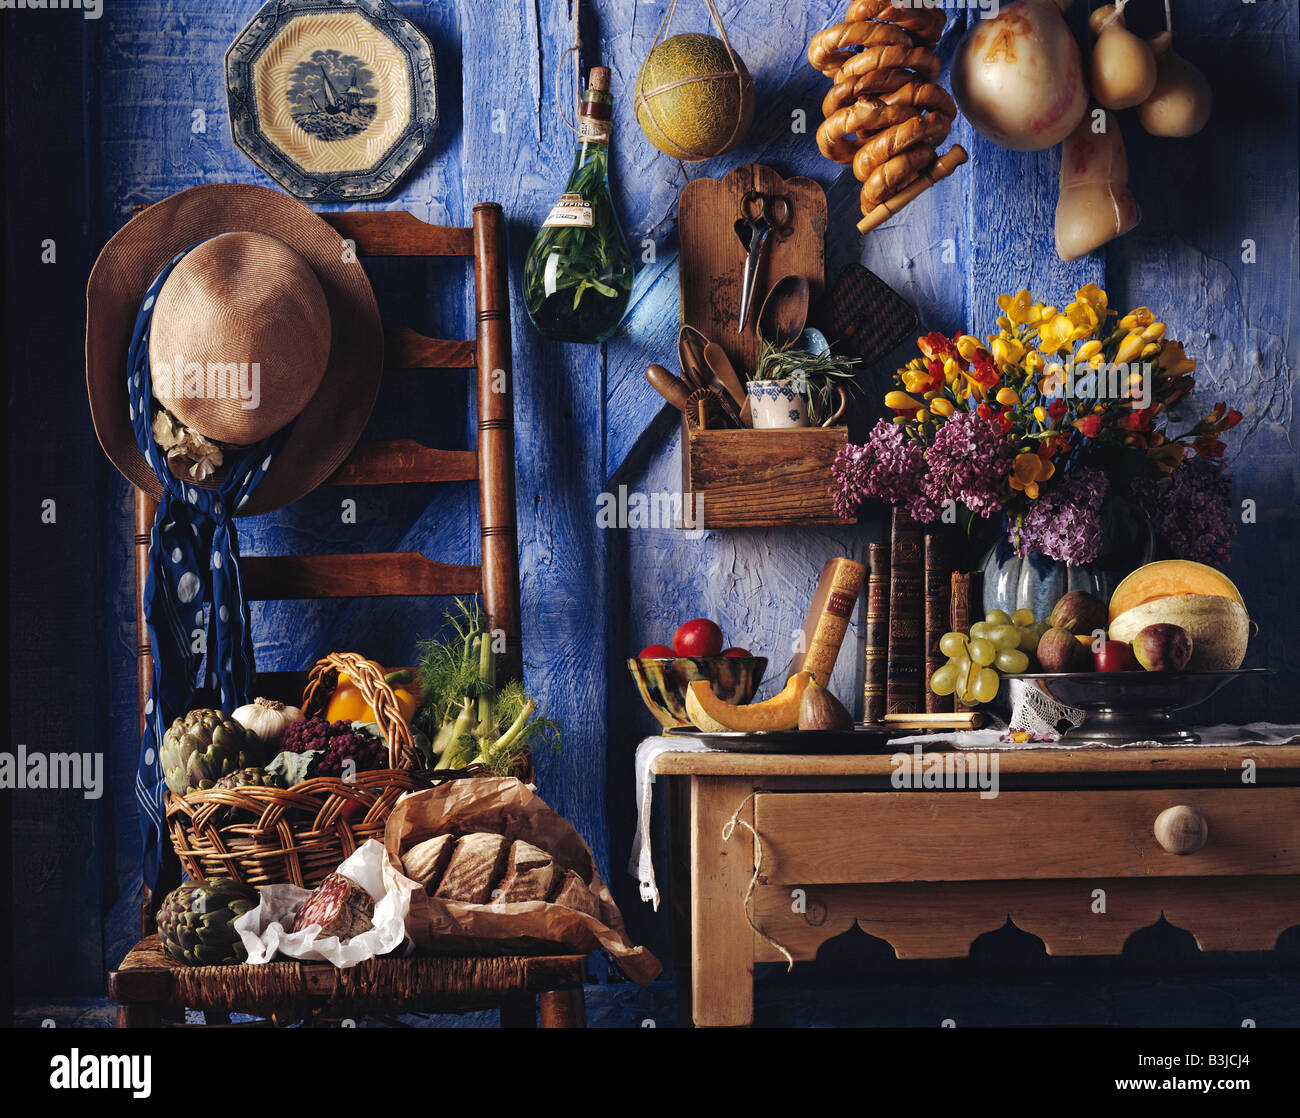 stock photo rustic kitchen table editorial food rustic kitchen table Rustic kitchen table editorial food